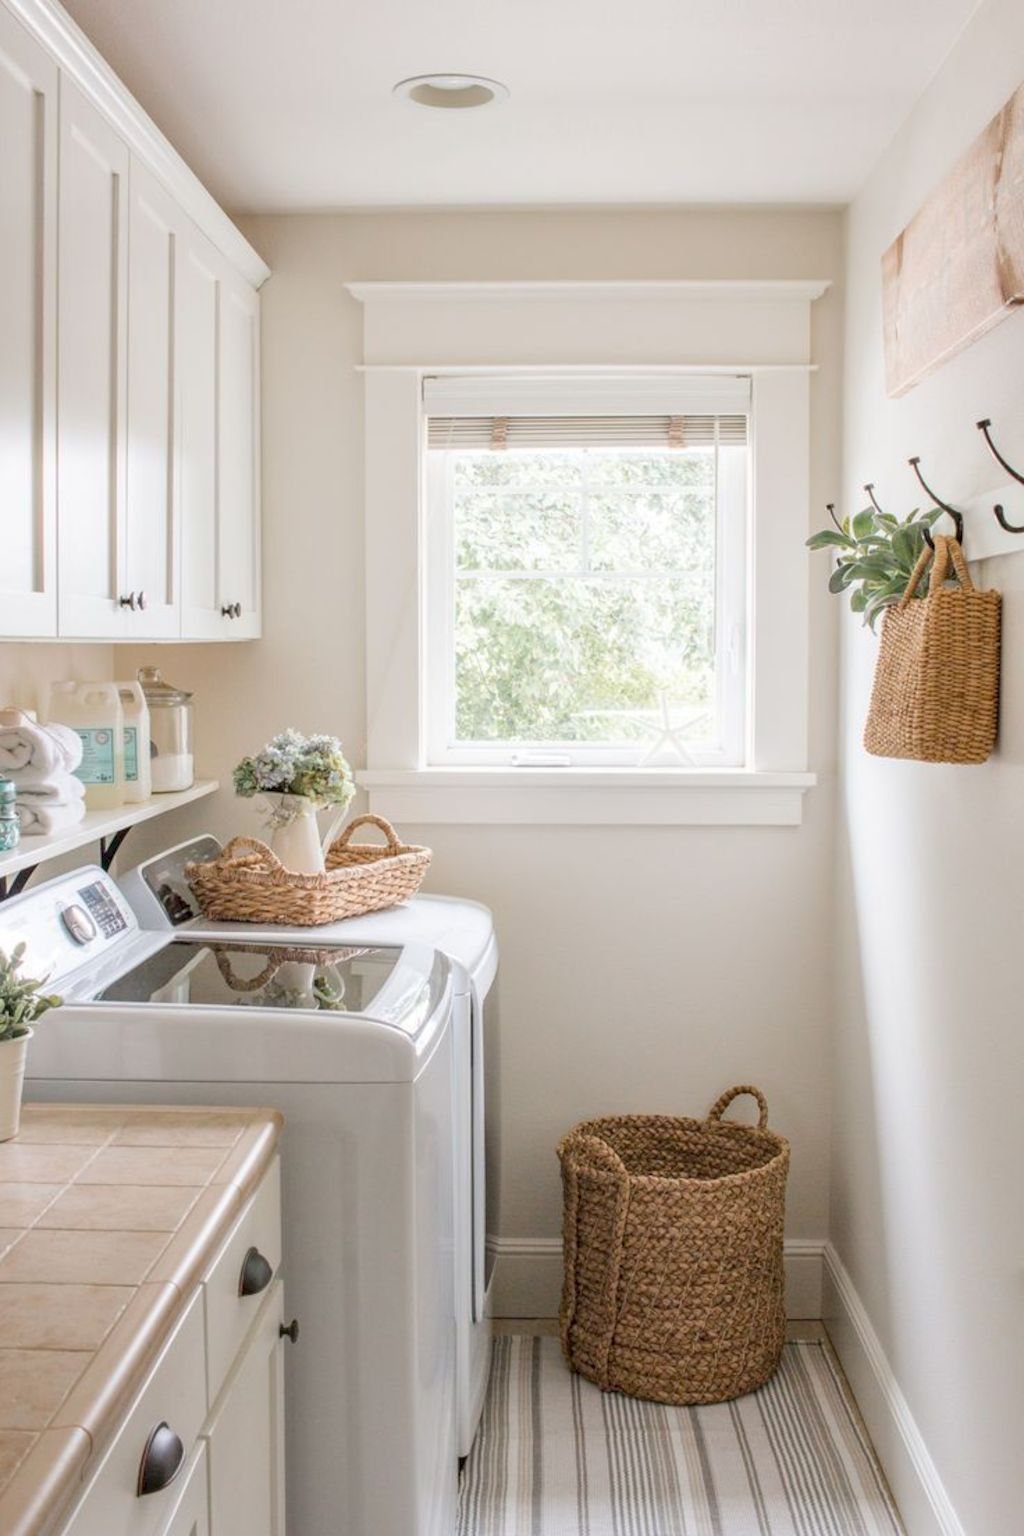 Easy tricks to make a Scandinavian style laundry room which will give a perfect refreshment in simple and sleek designs Image 3